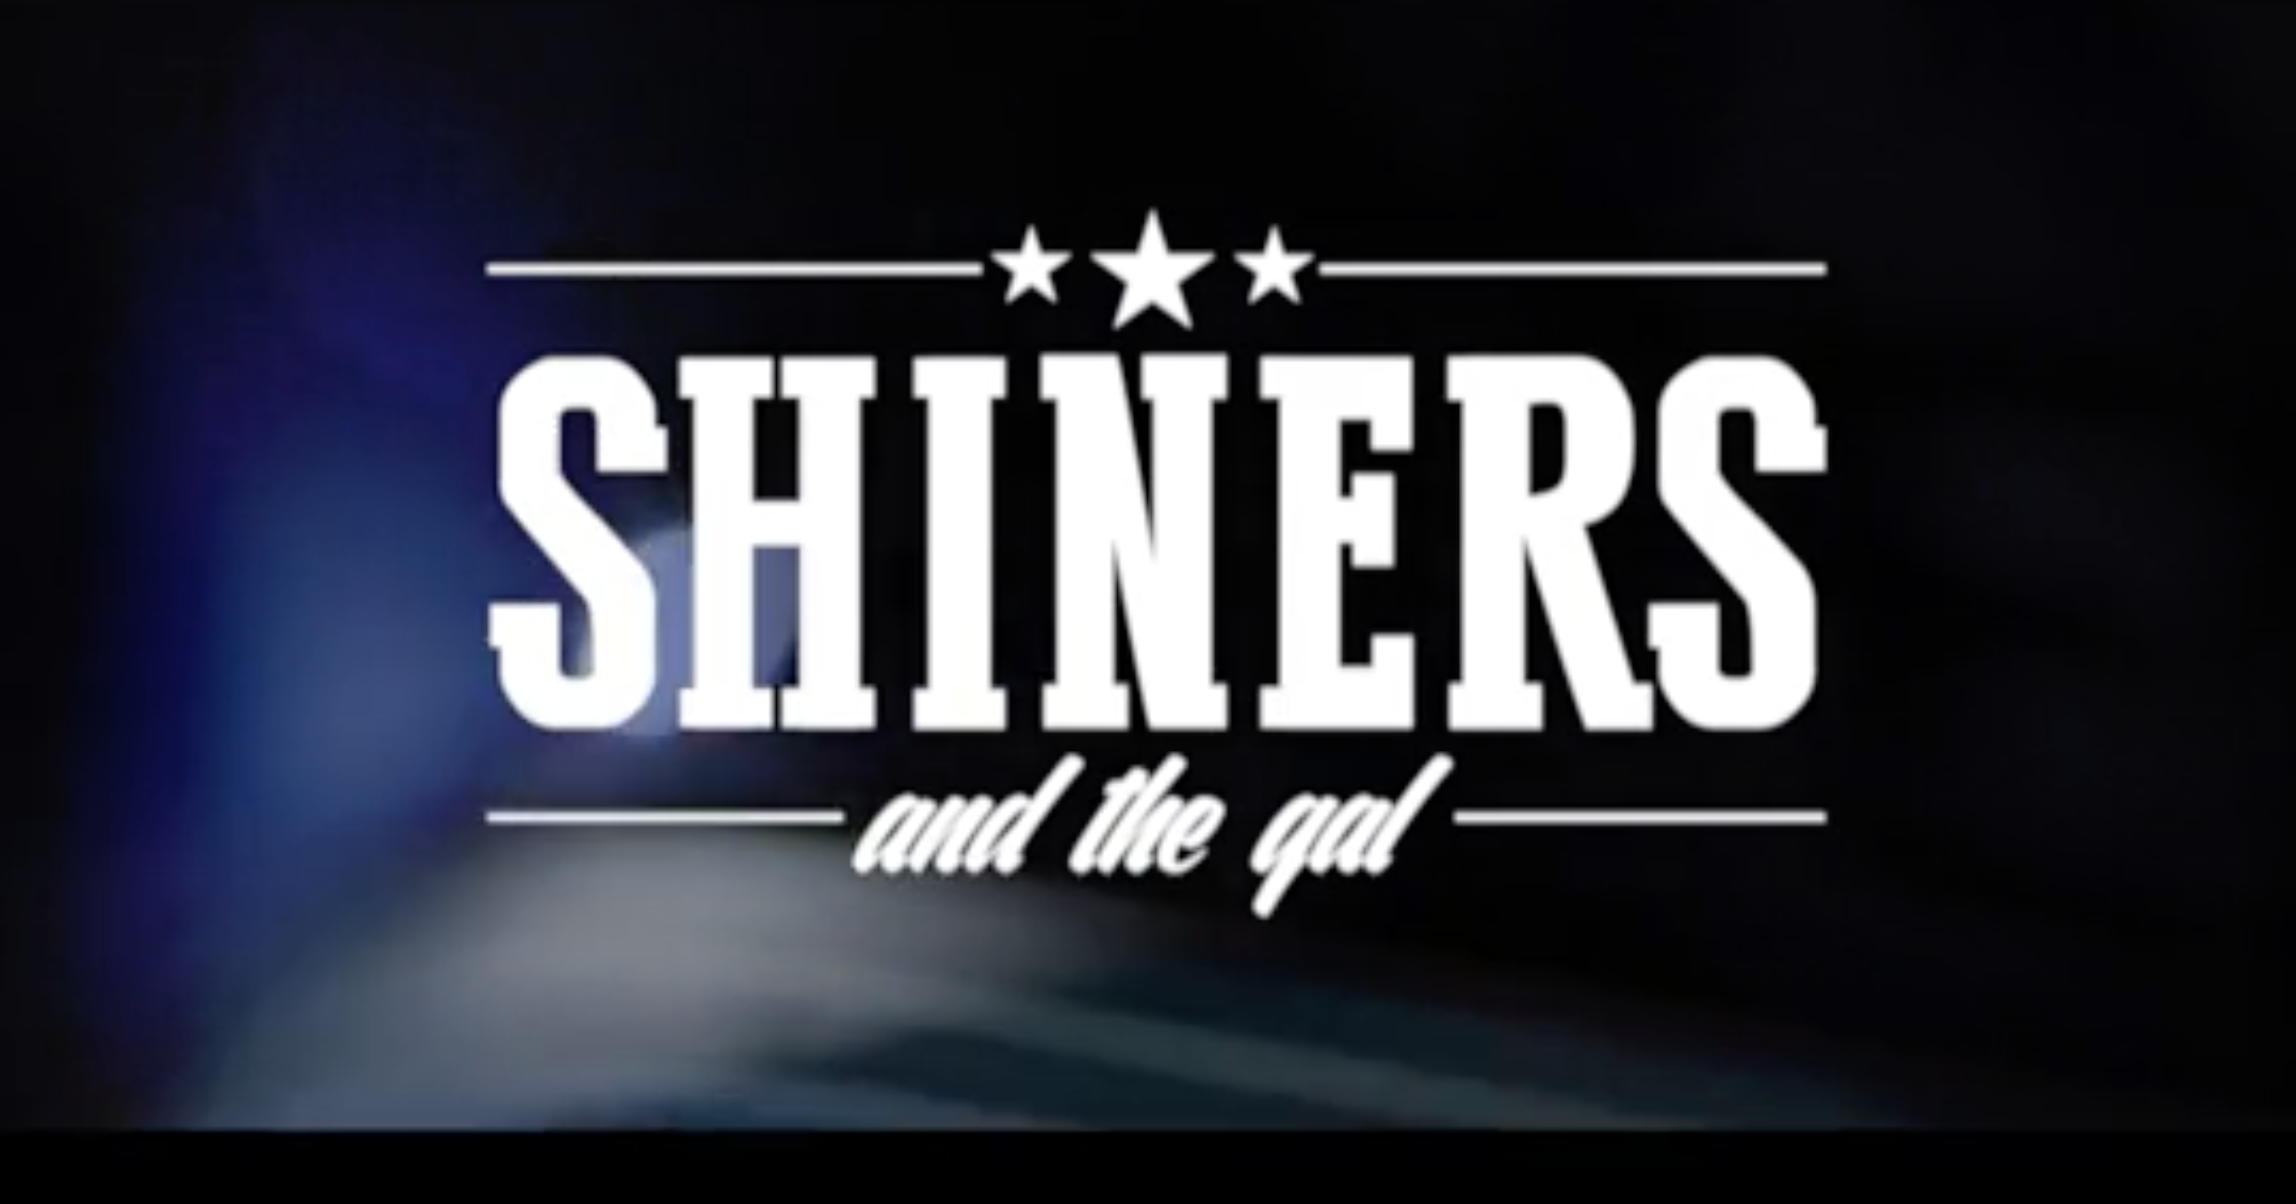 Shiners And the Gall